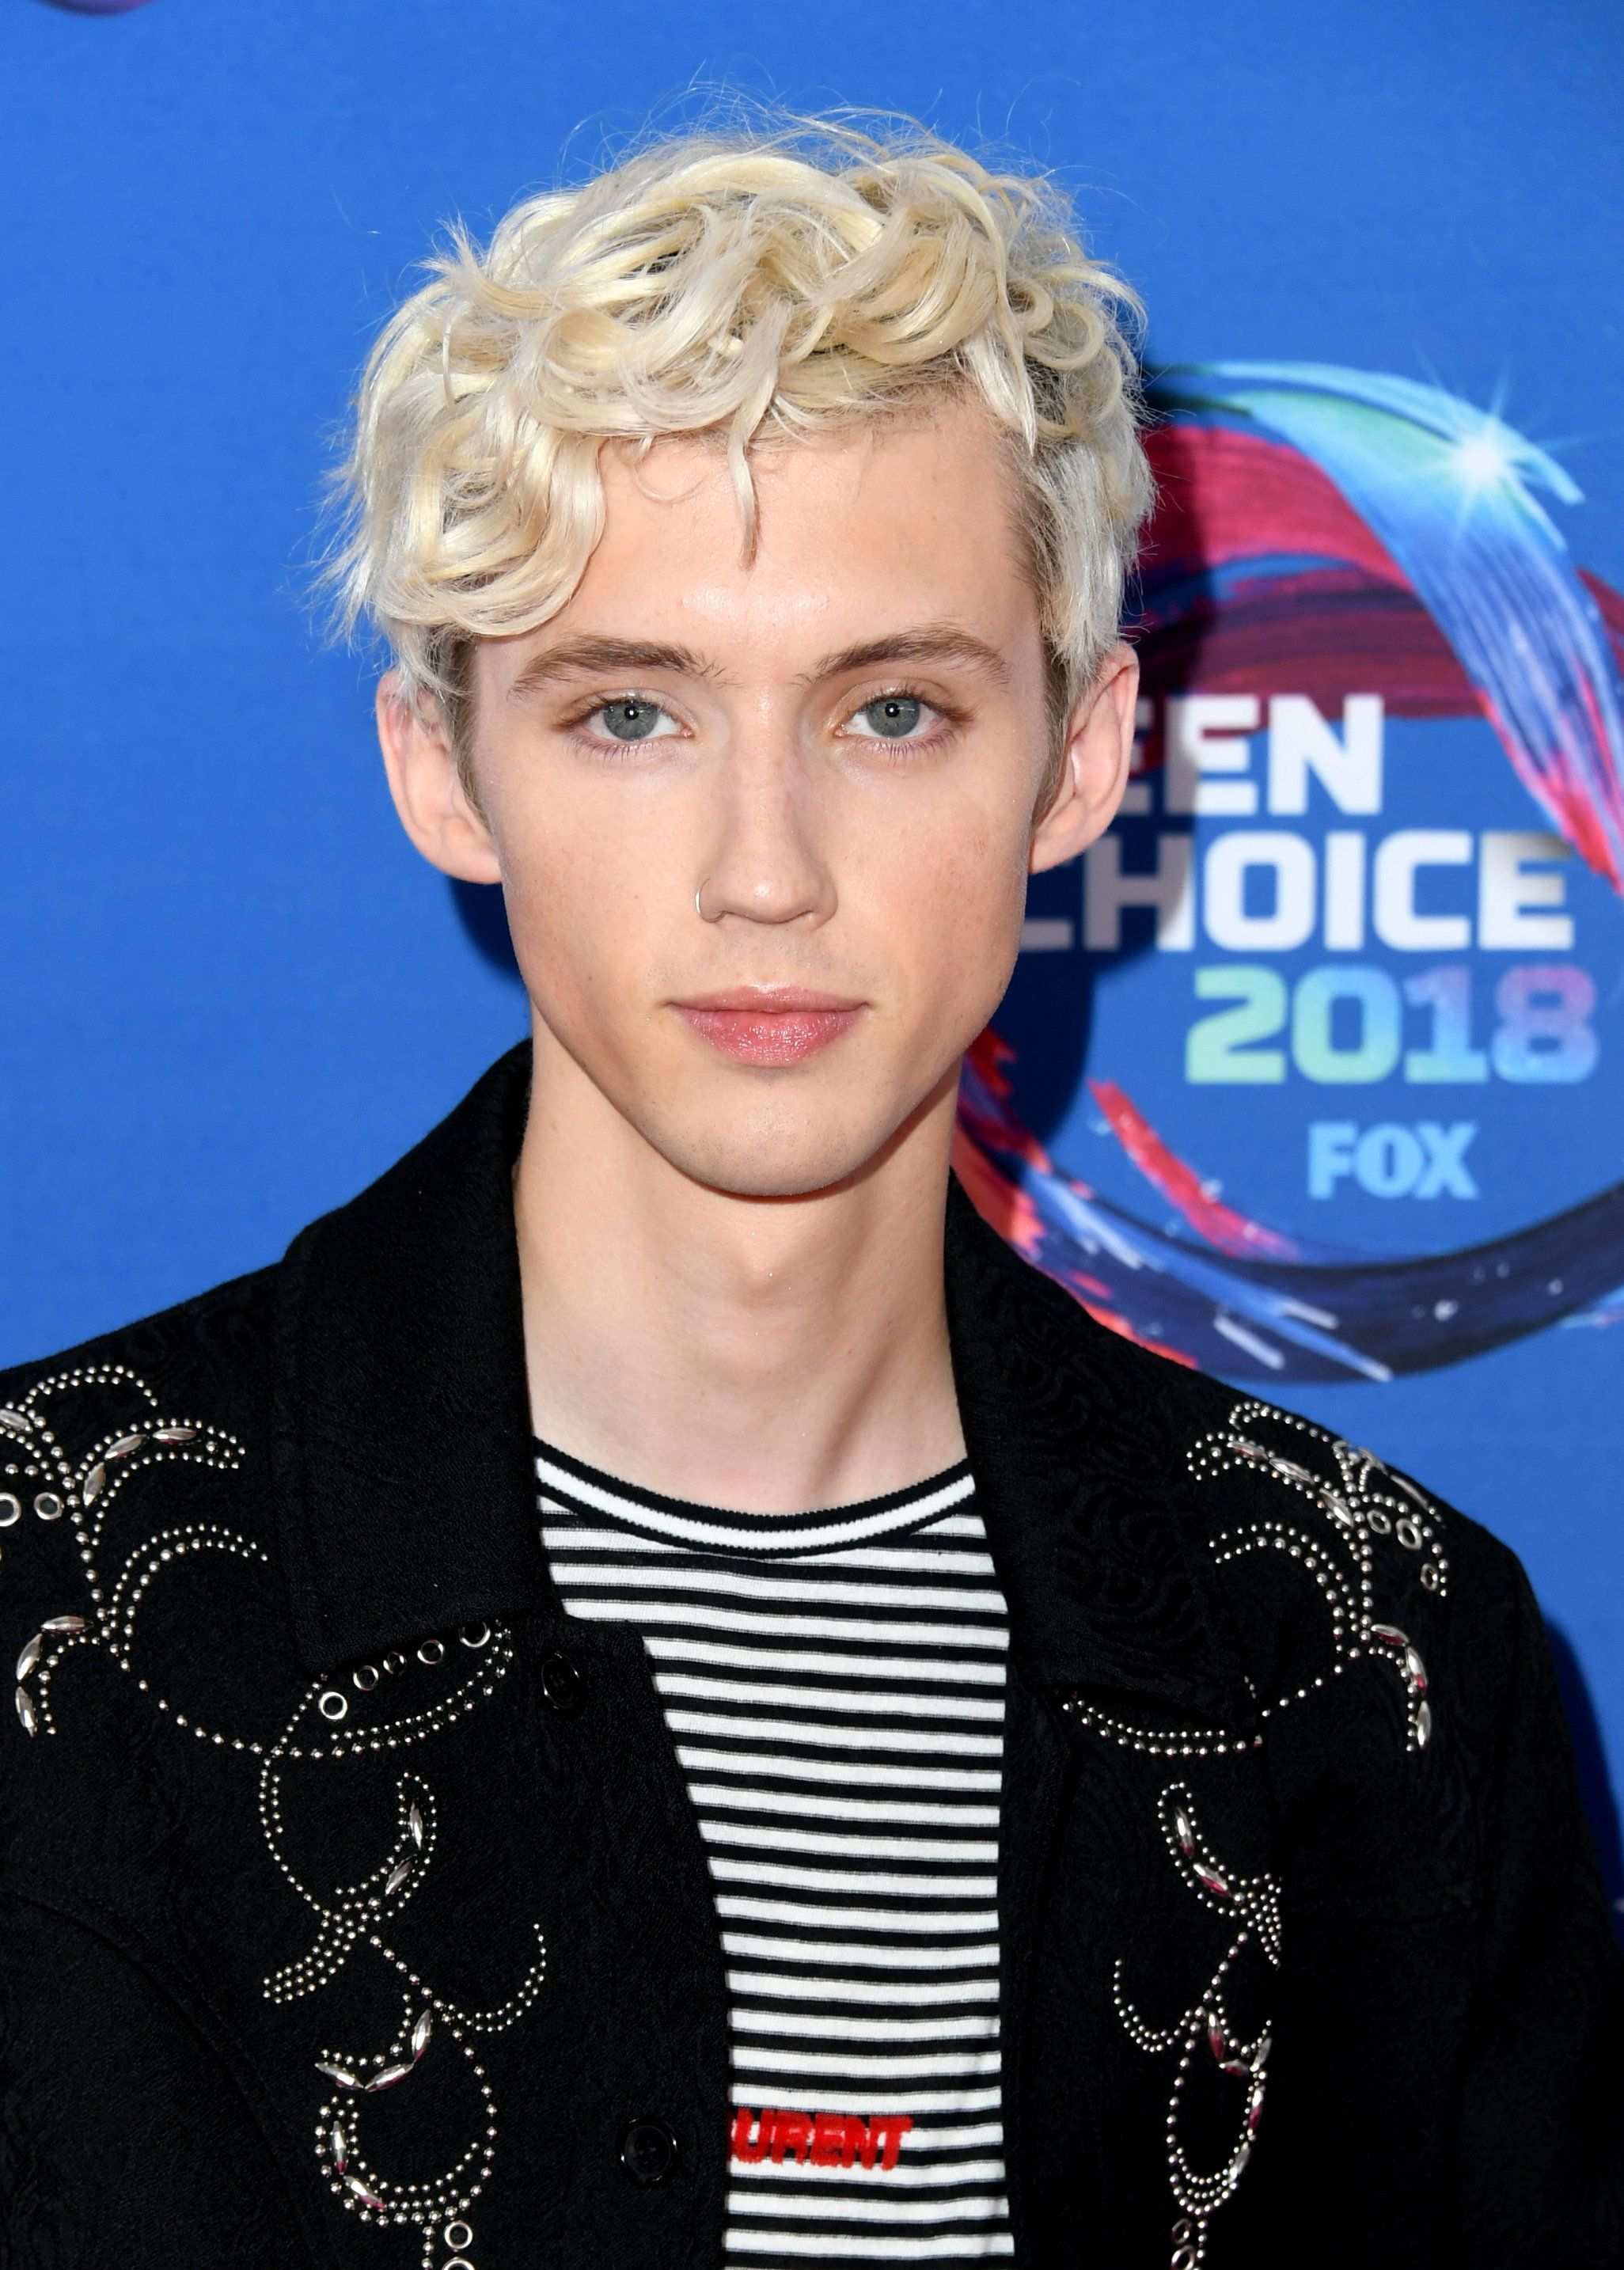 INGLEWOOD, CA - AUGUST 12:  Troye Sivan attends FOX's Teen Choice Awards at The Forum on August 12, 2018 in Inglewood, California.  (Photo by Jon Kopaloff/FilmMagic)